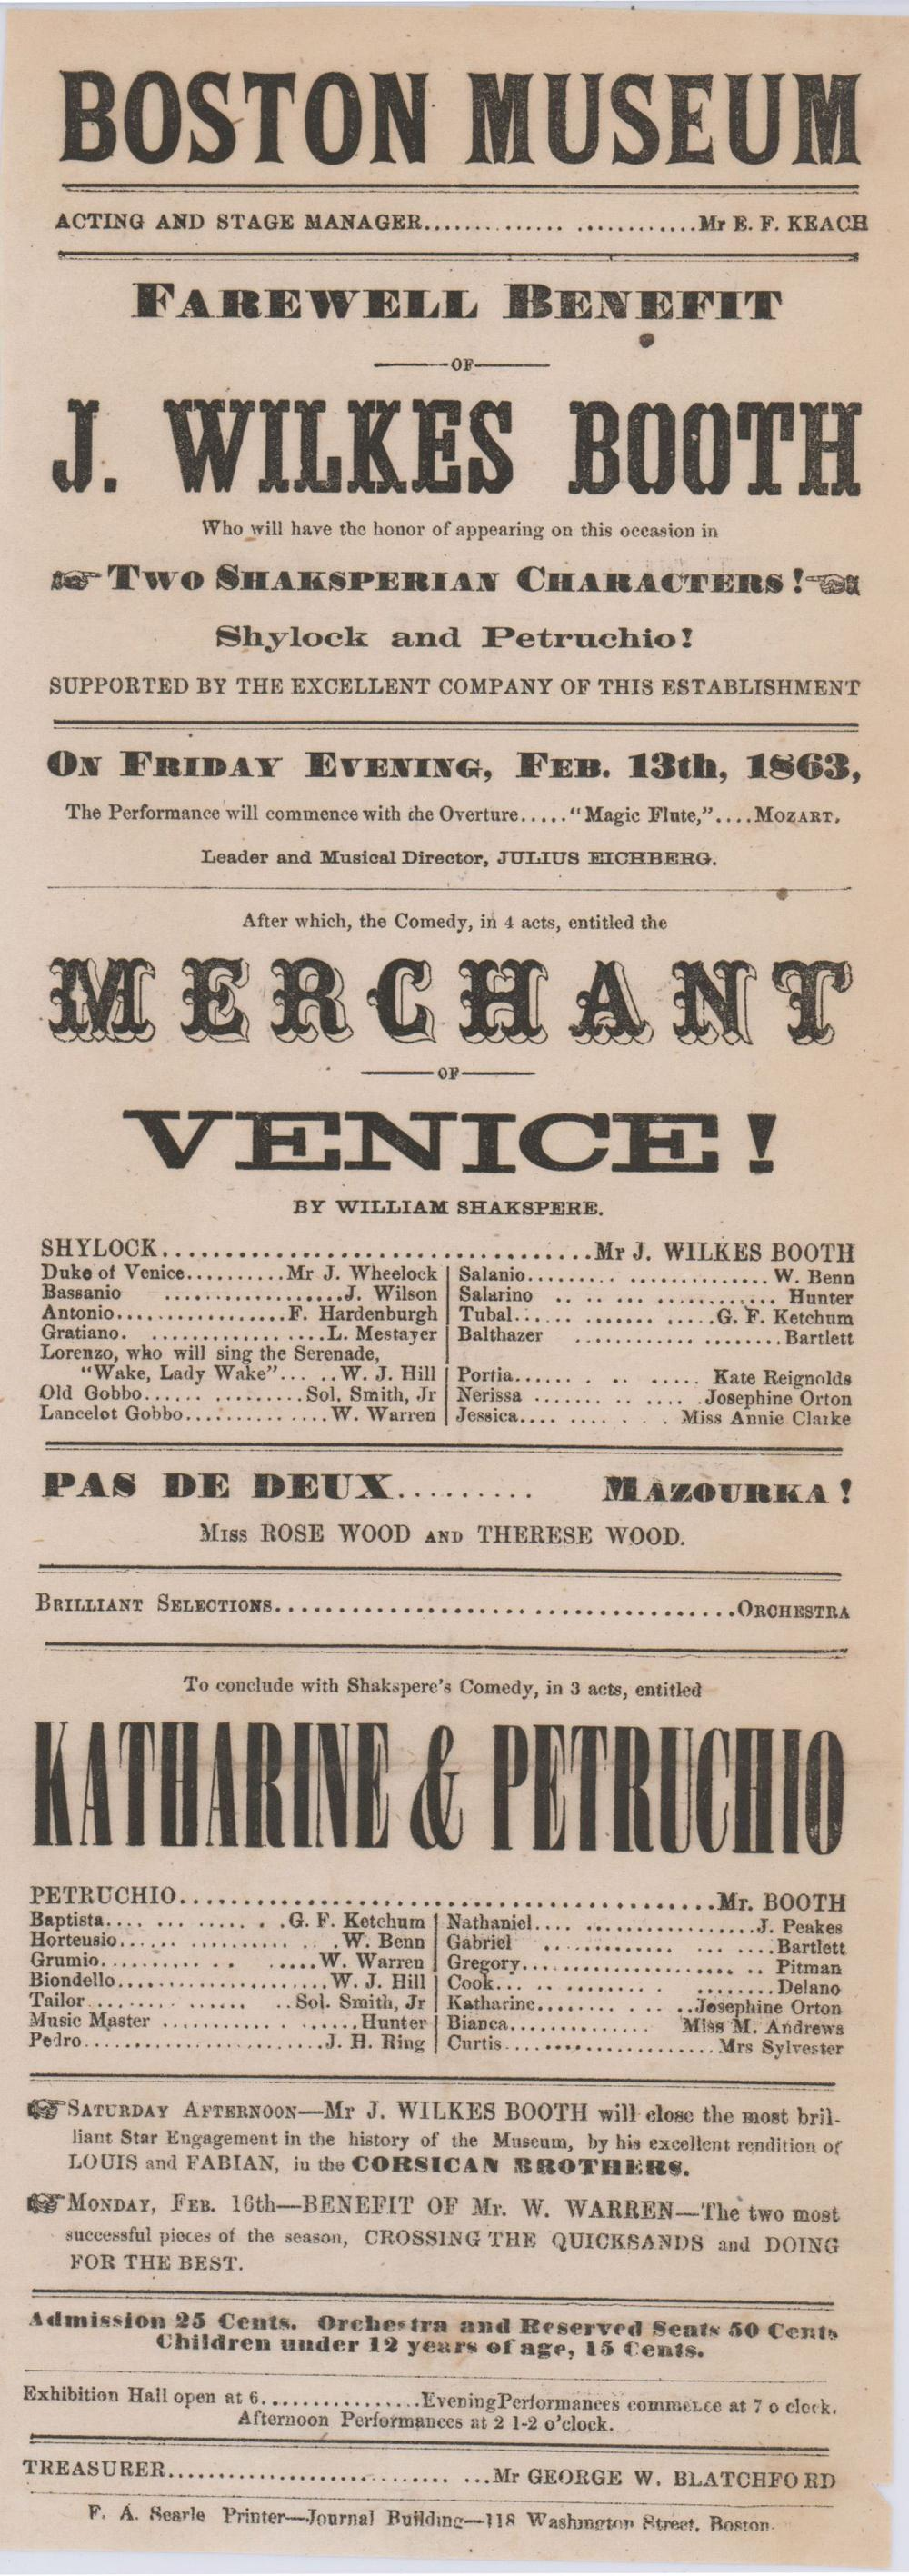 John Wilkes Booth Appearing as Shylock and Petruchio!